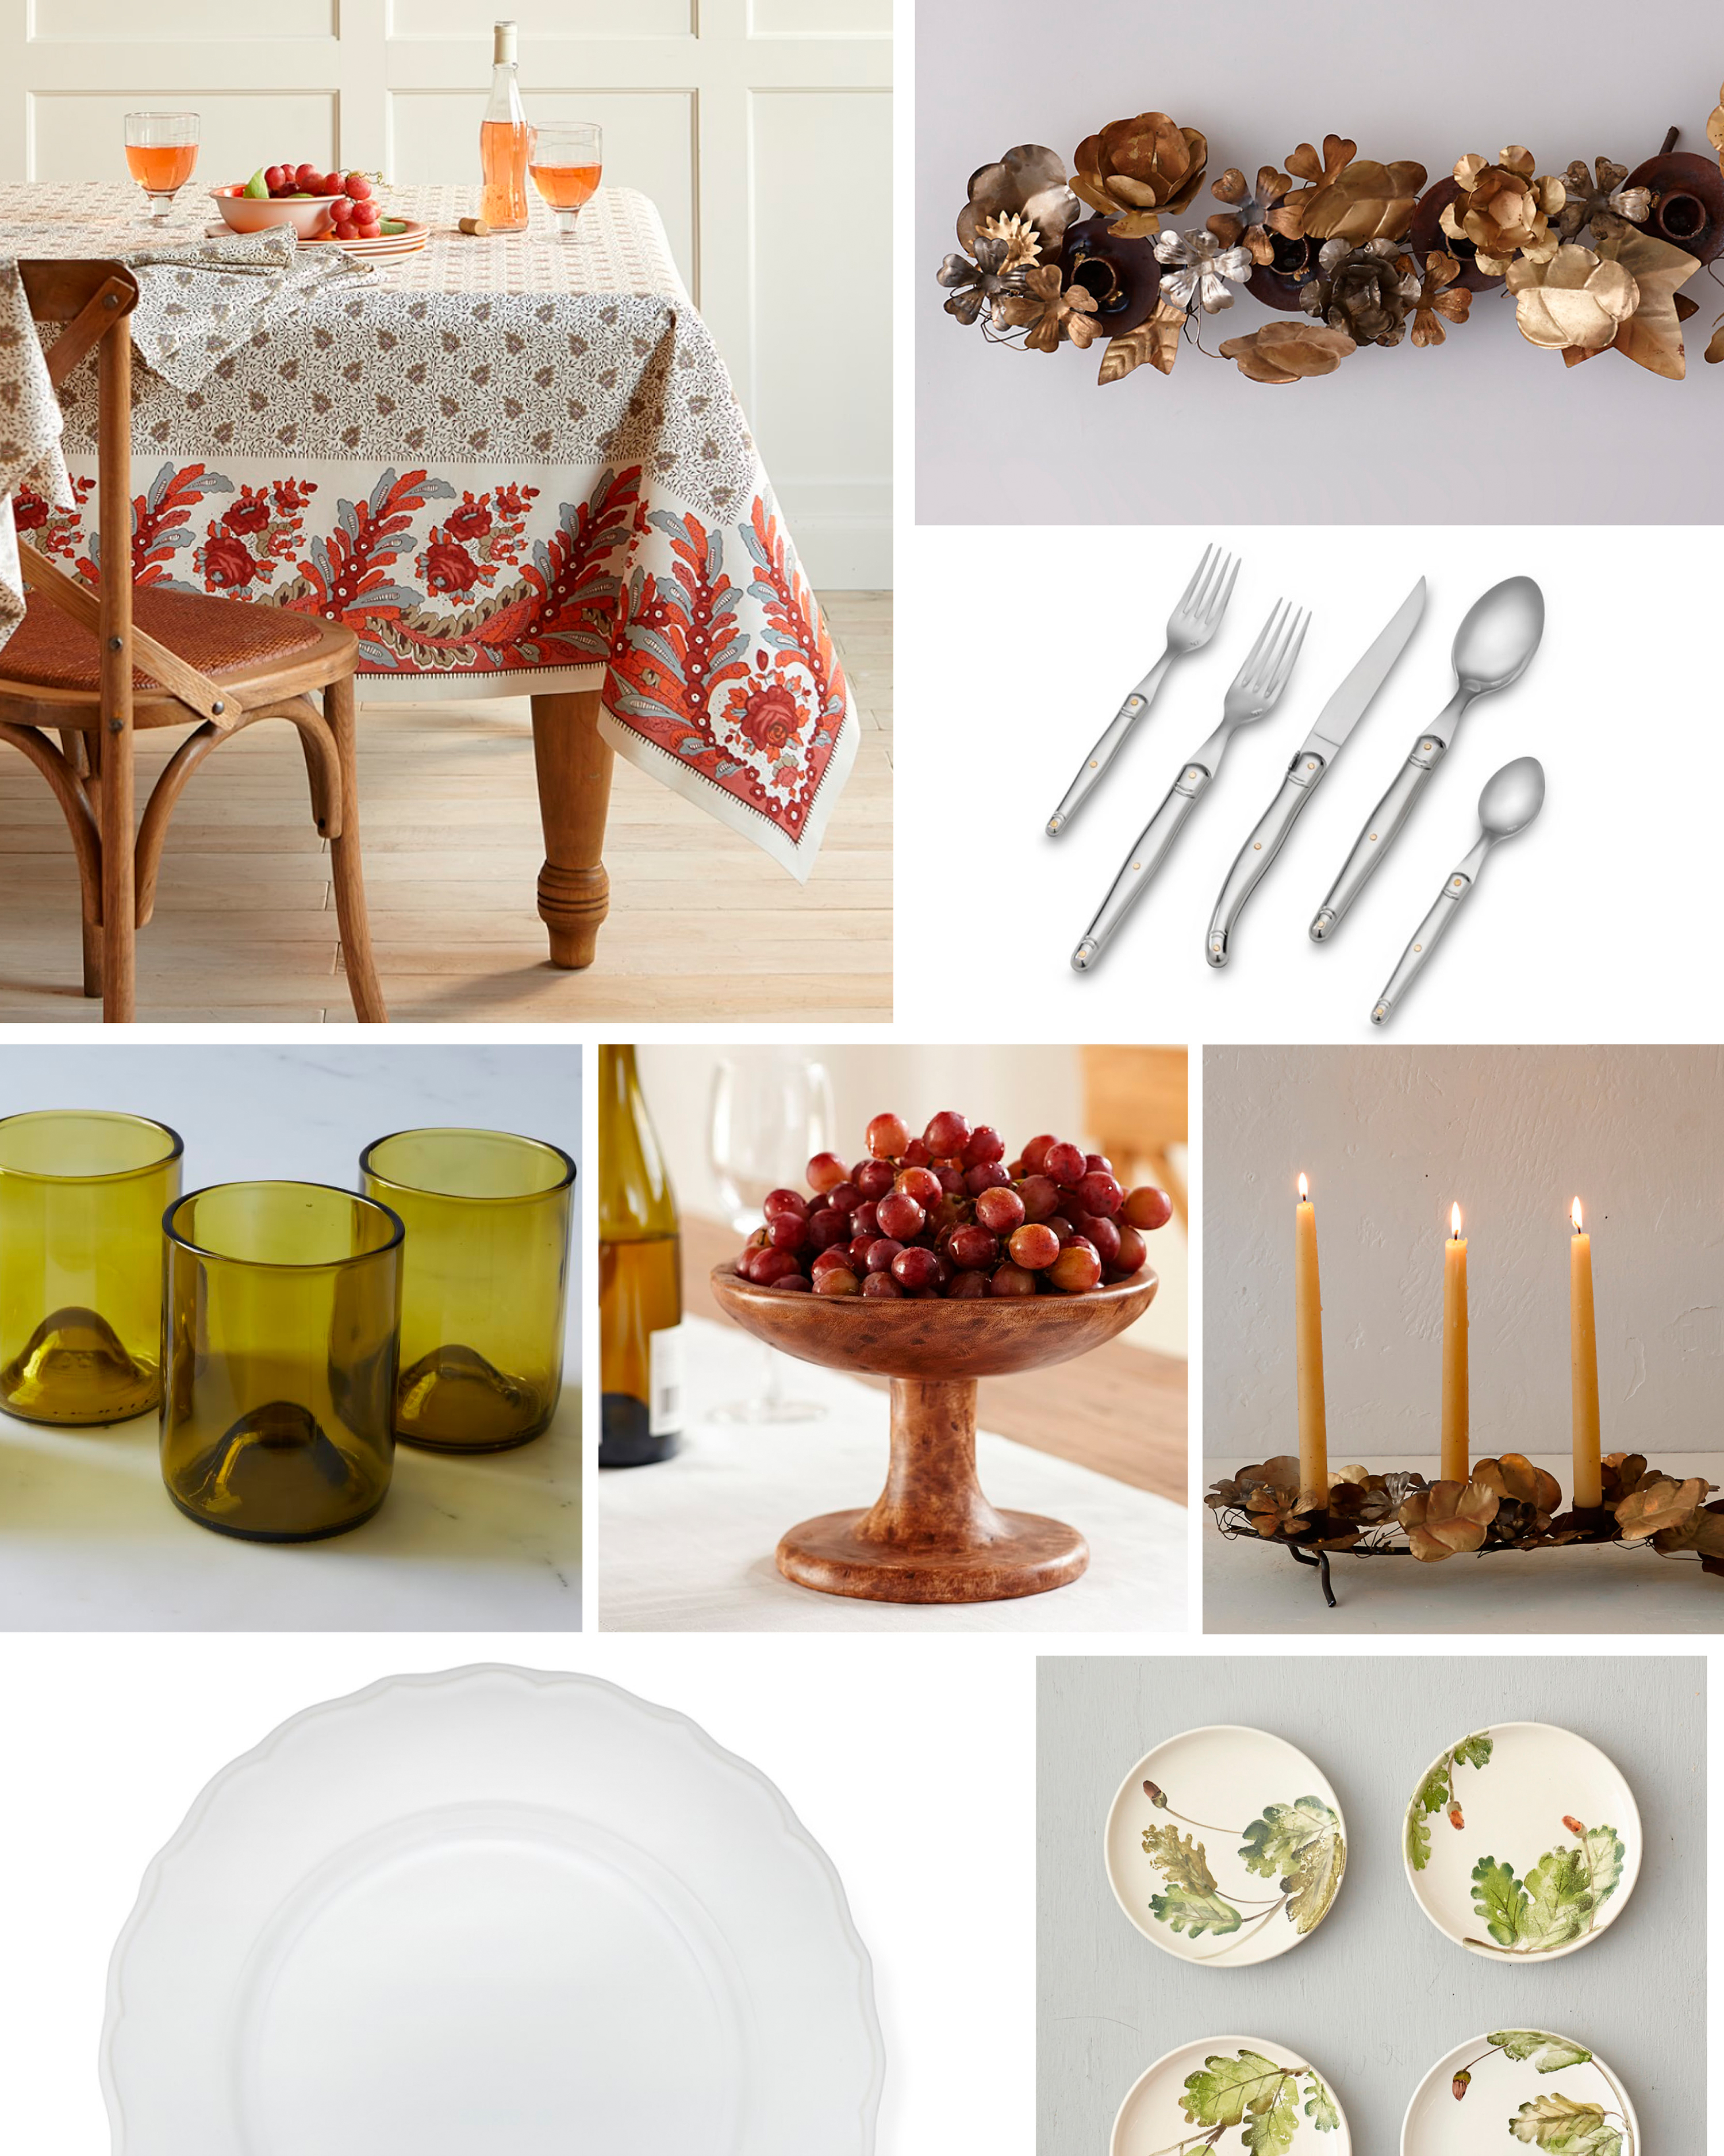 blueprint-thanksgiving-traditional-family-collage-1114.jpg